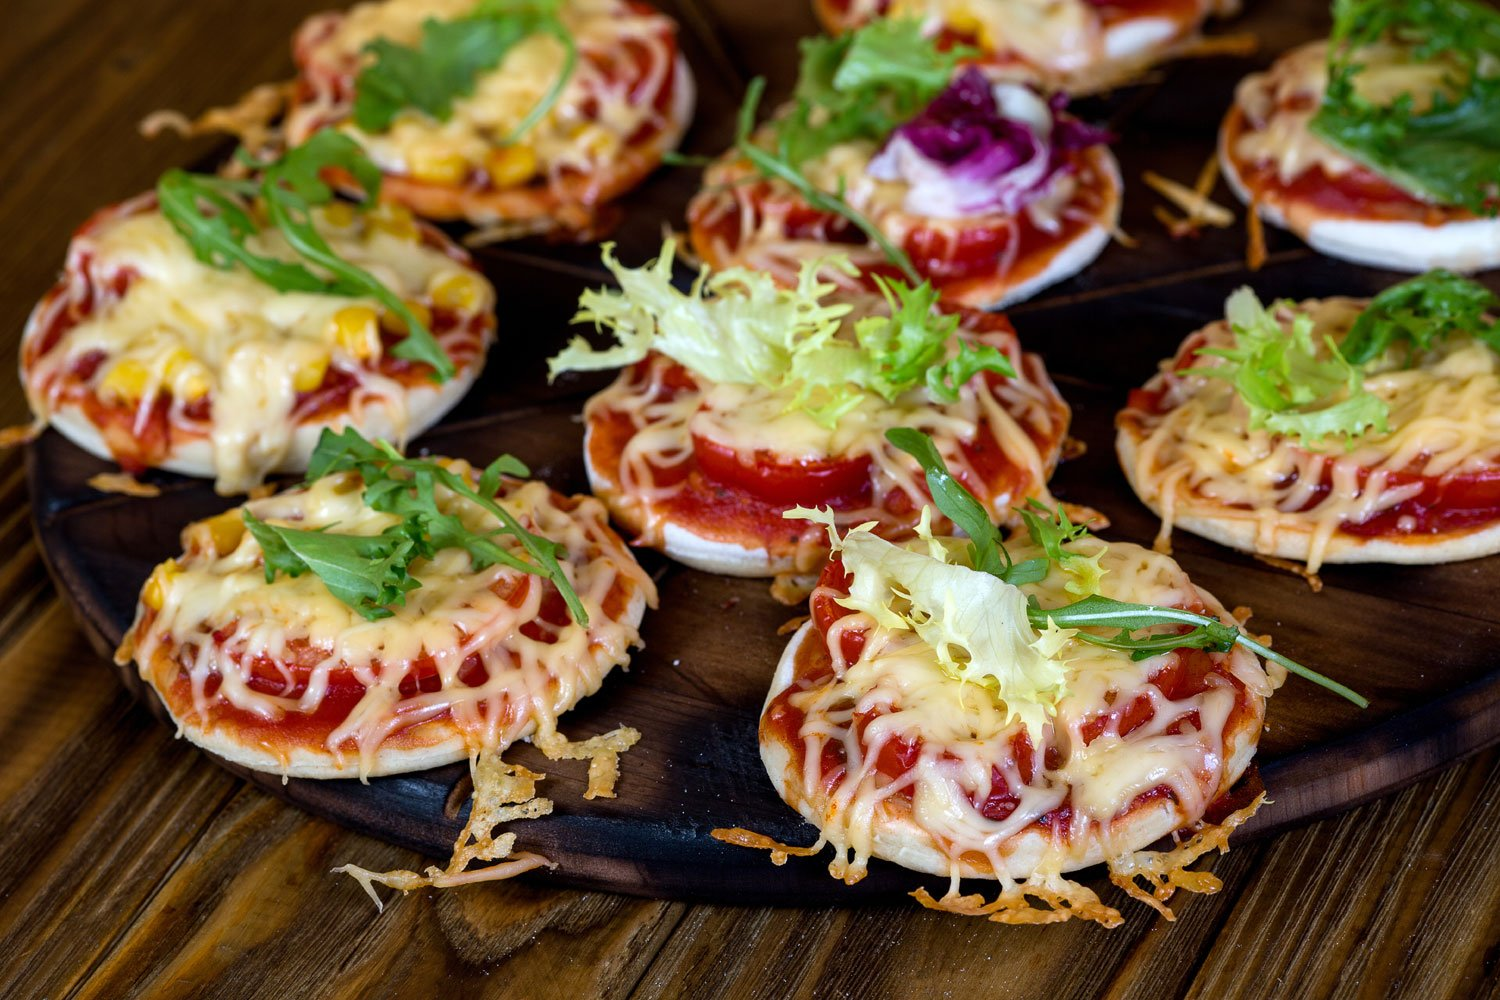 """For a gourmet experience, the Food Network recommends that """"rather than ordering in delivery, offer guests something a bit more impressive with adorable homemade cheese pizzettes."""""""